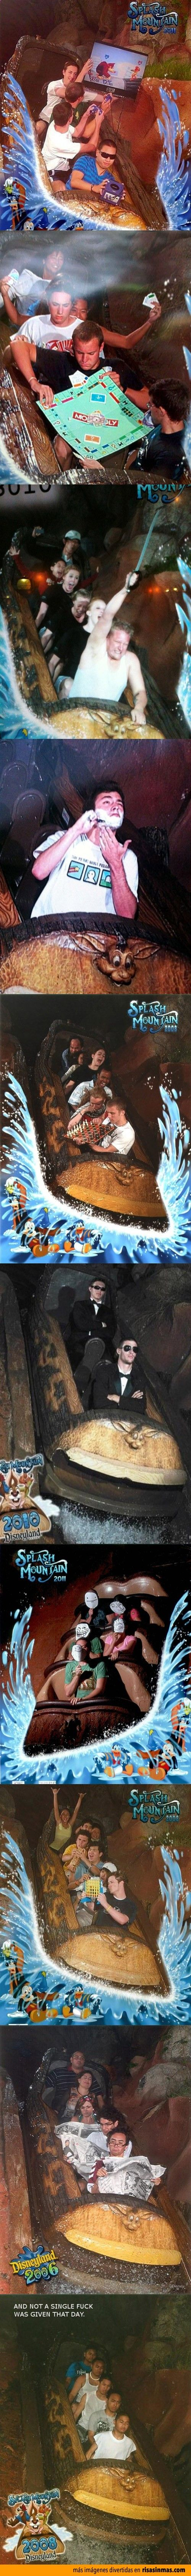 Fotos graciosas de Splash Mountain en Disneyland.